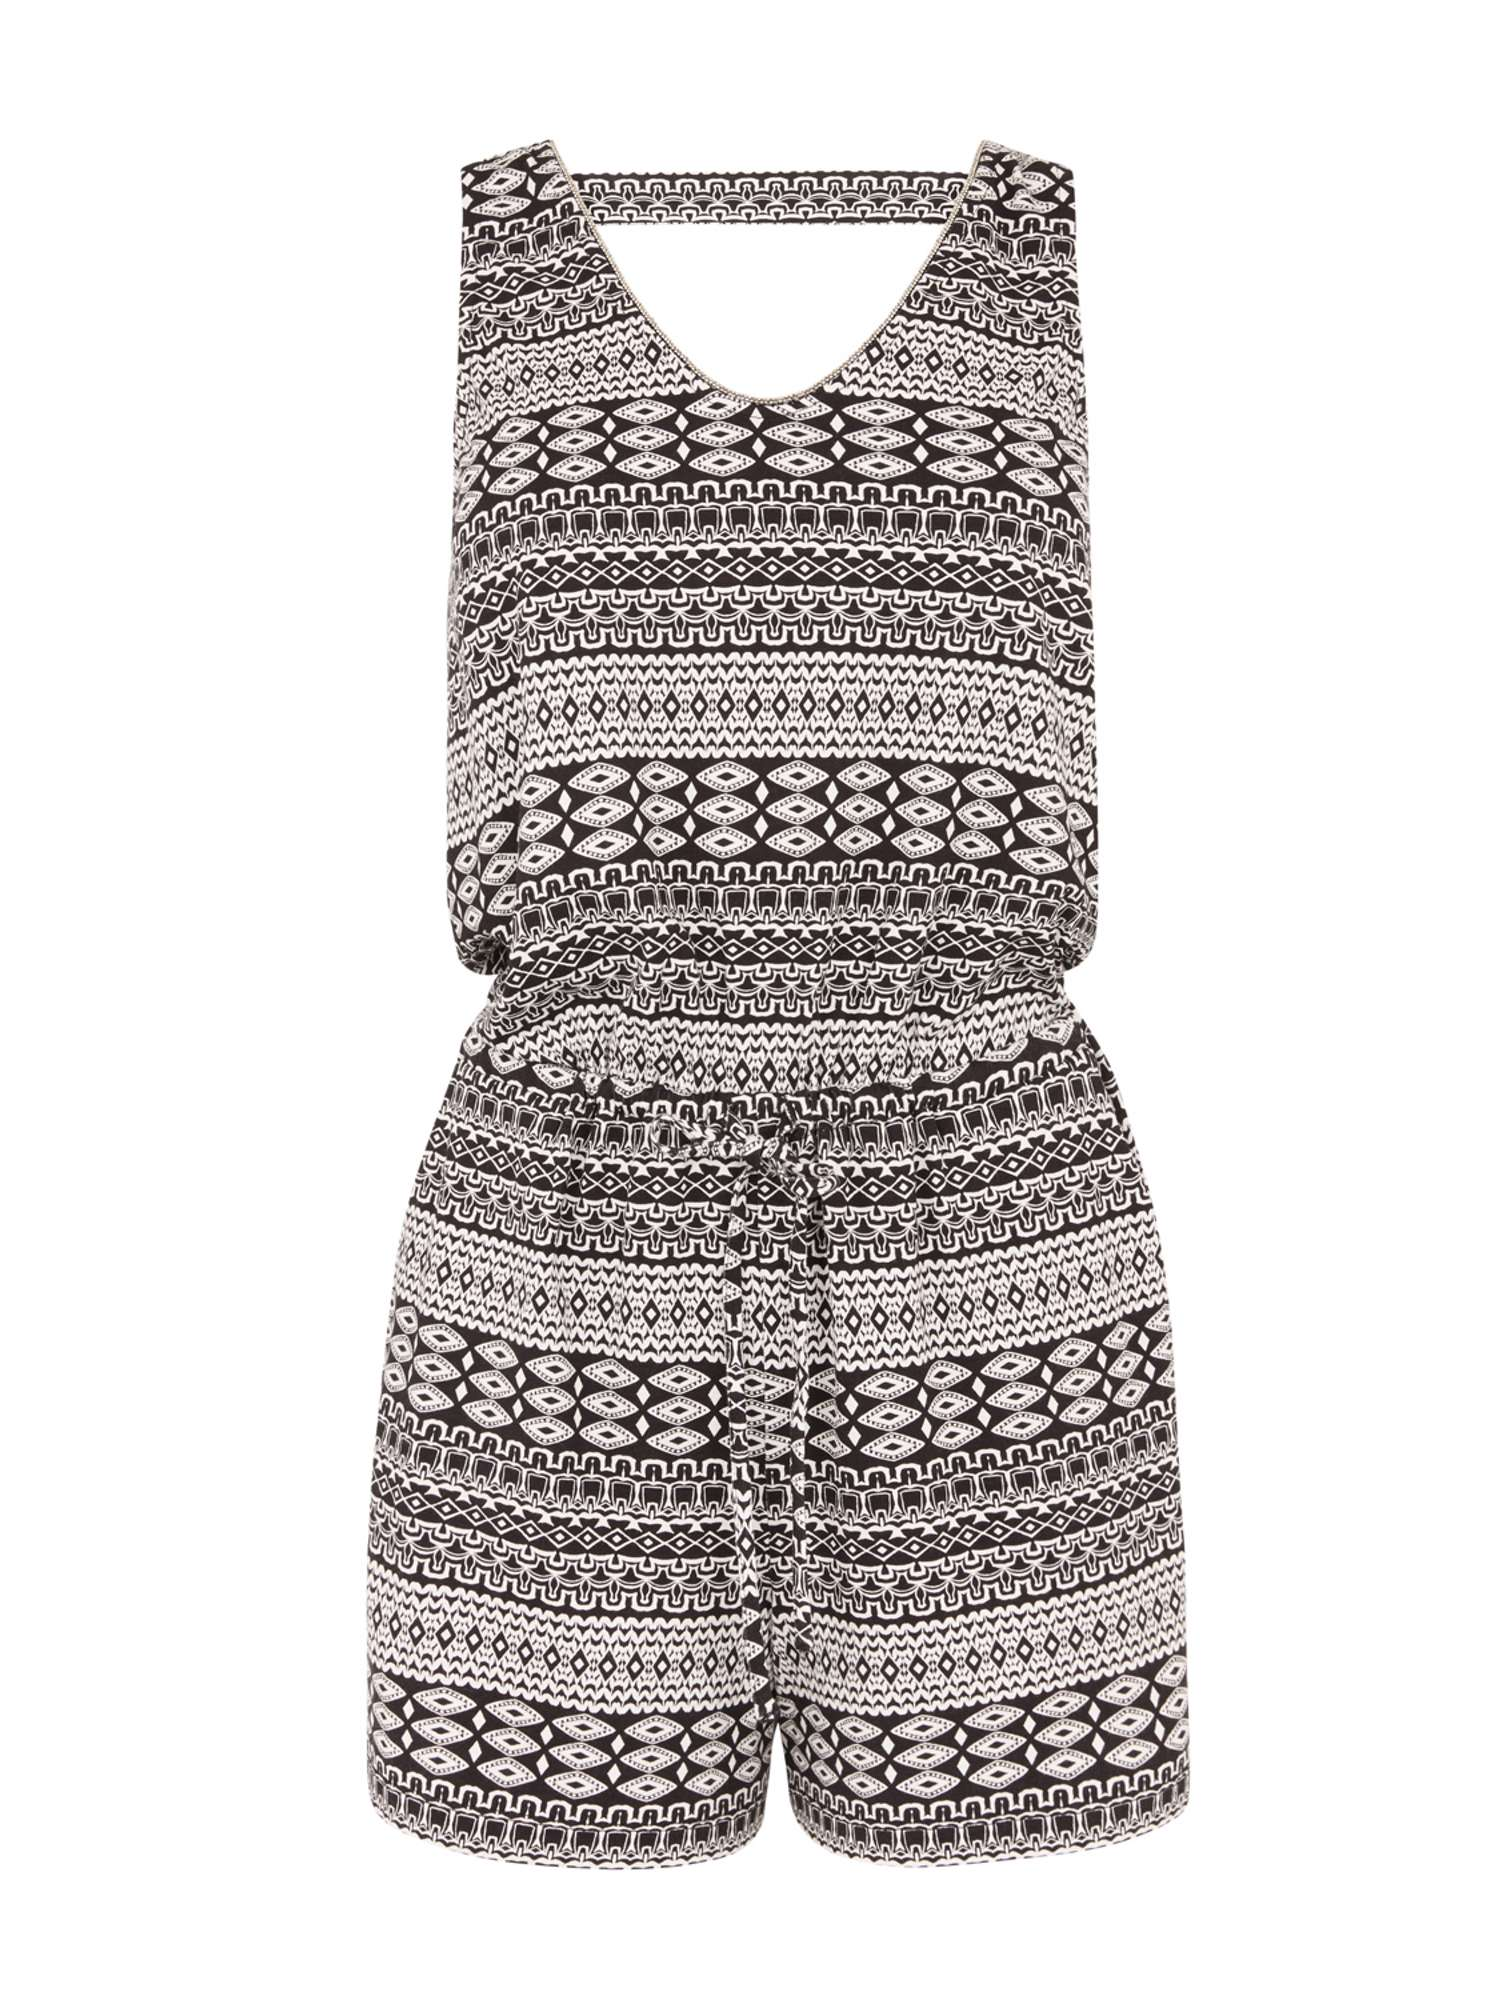 Oasis Tribal Tribal Playsuit Oasis BxqBvr4wY